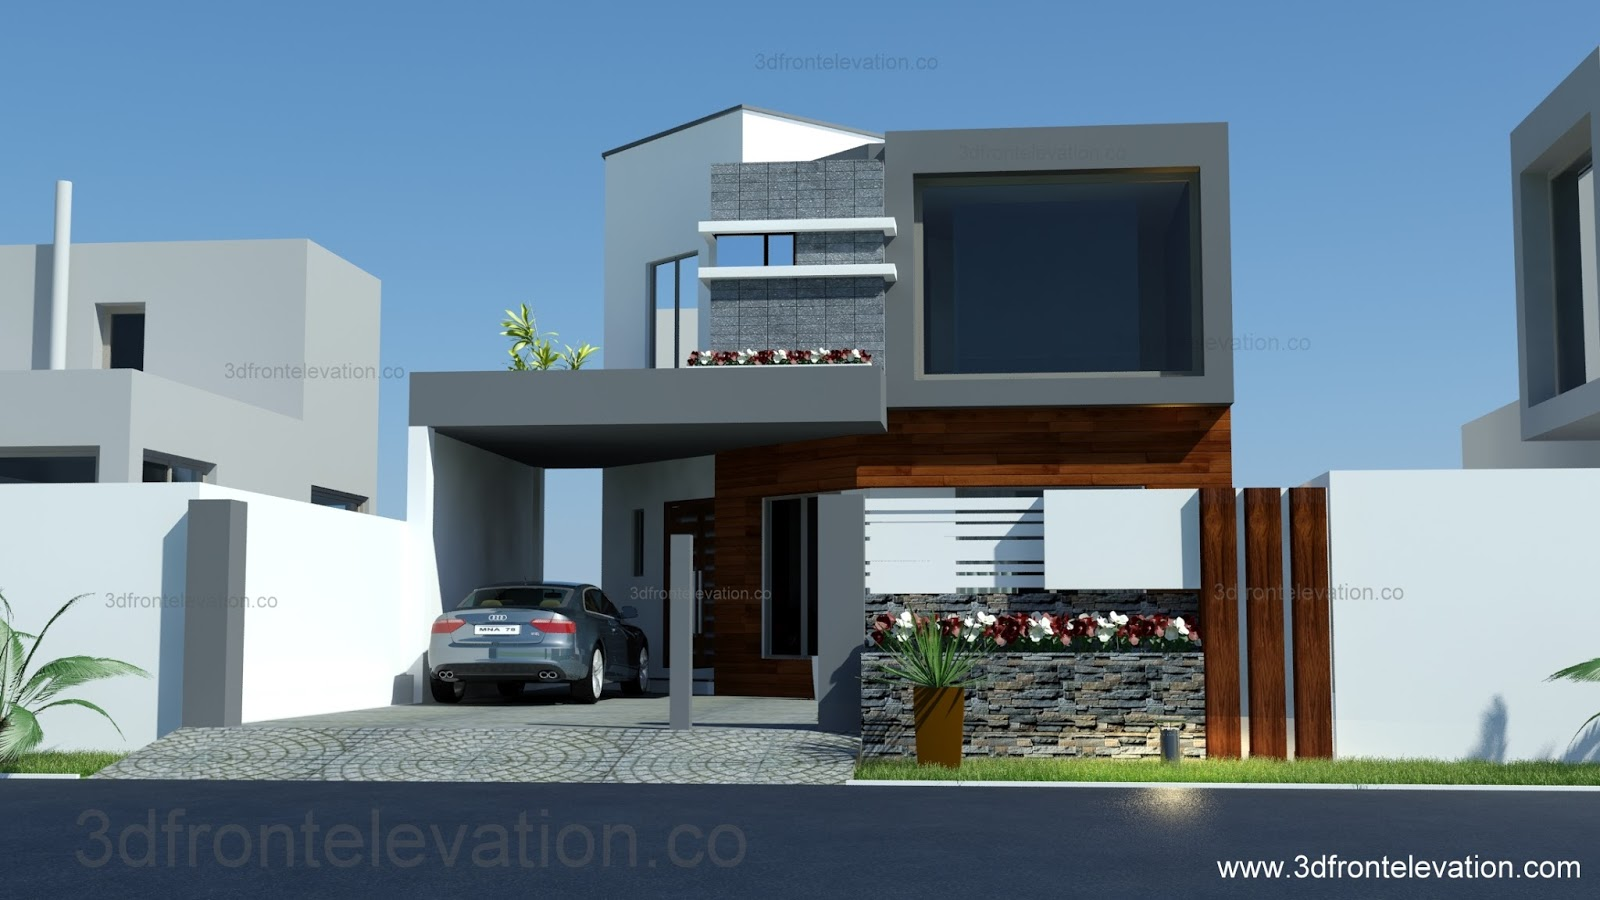 3D Front Elevation.com: 8 Marla House Plan-Layout-Elevation